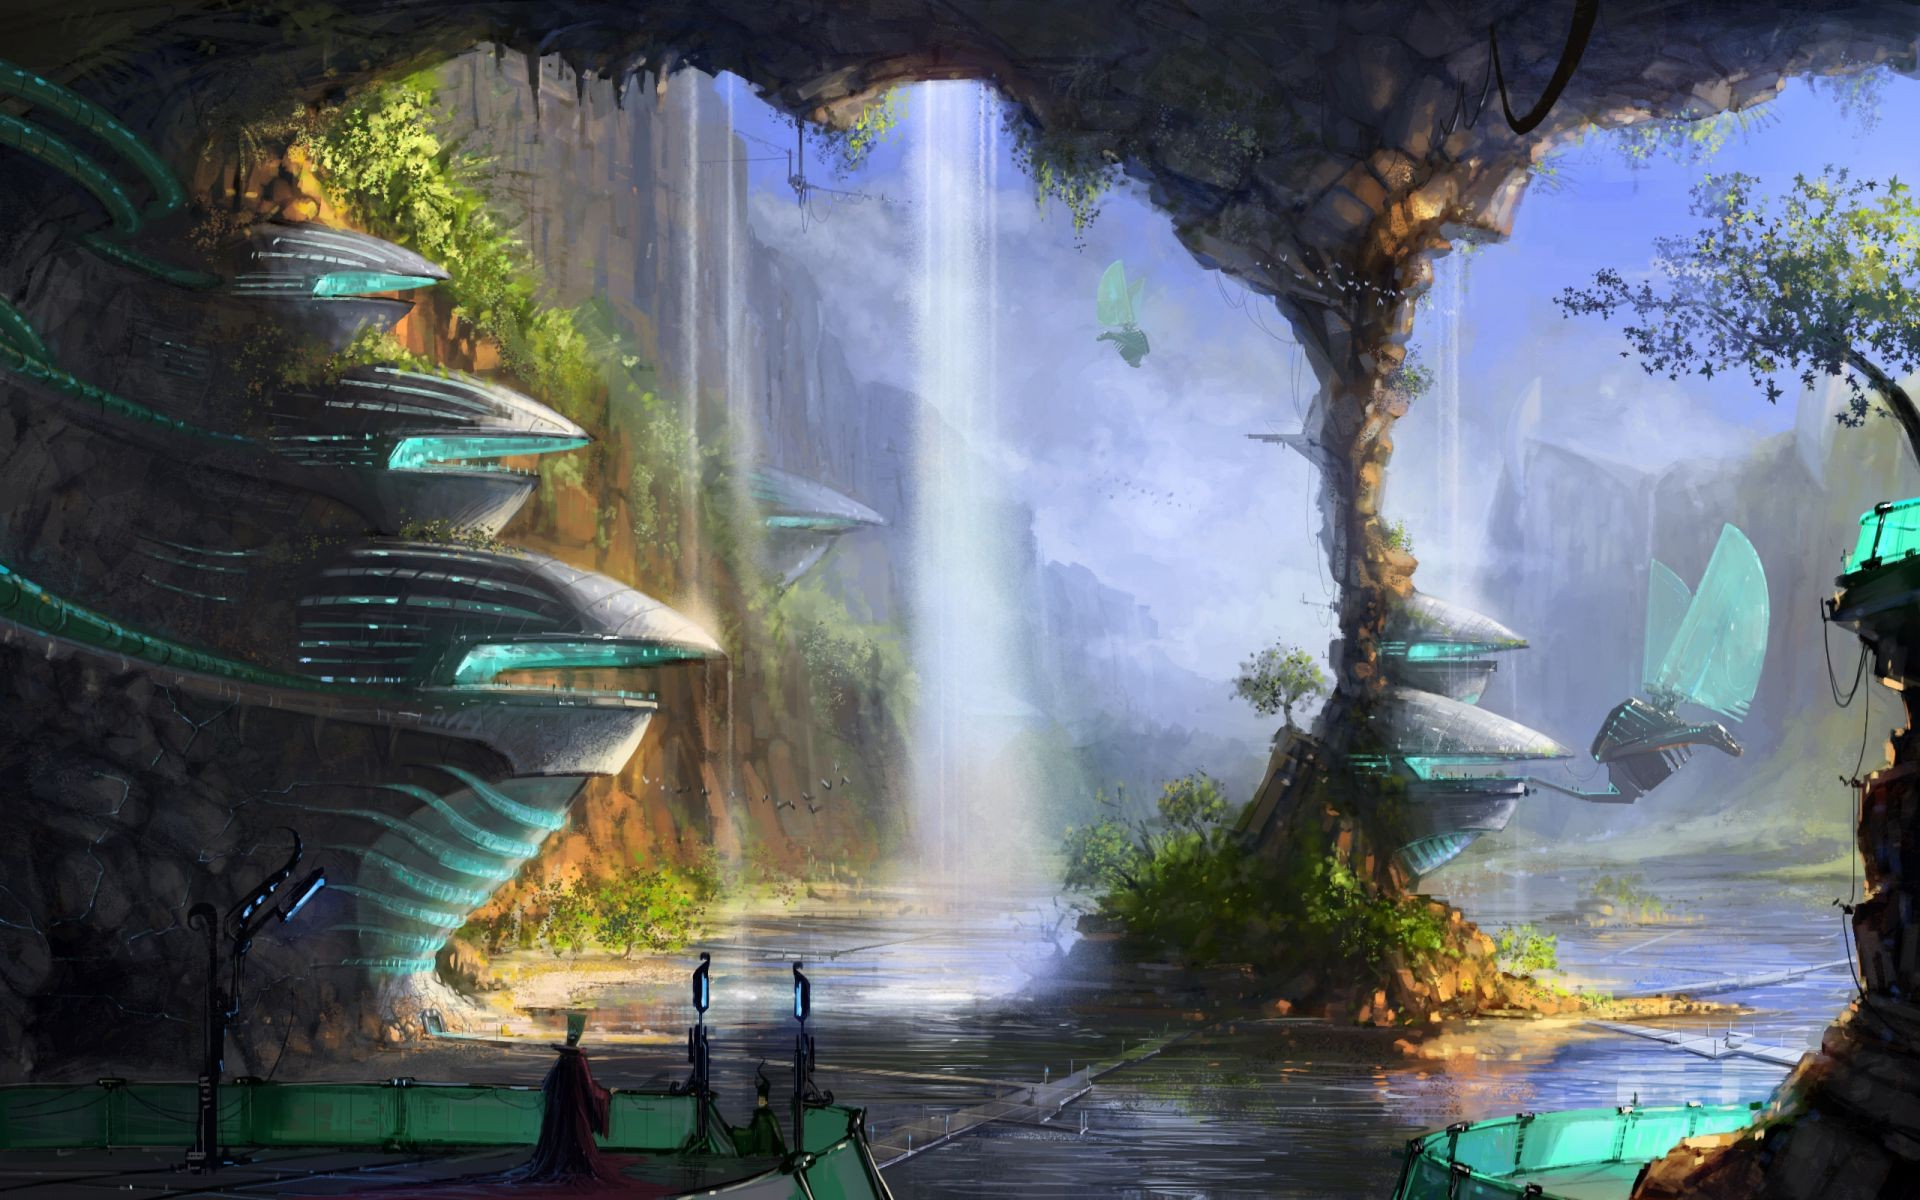 Cherry Blossom Anime Girl Phone Wallpaper Water Man Cave Column Falls City Phone Wallpapers